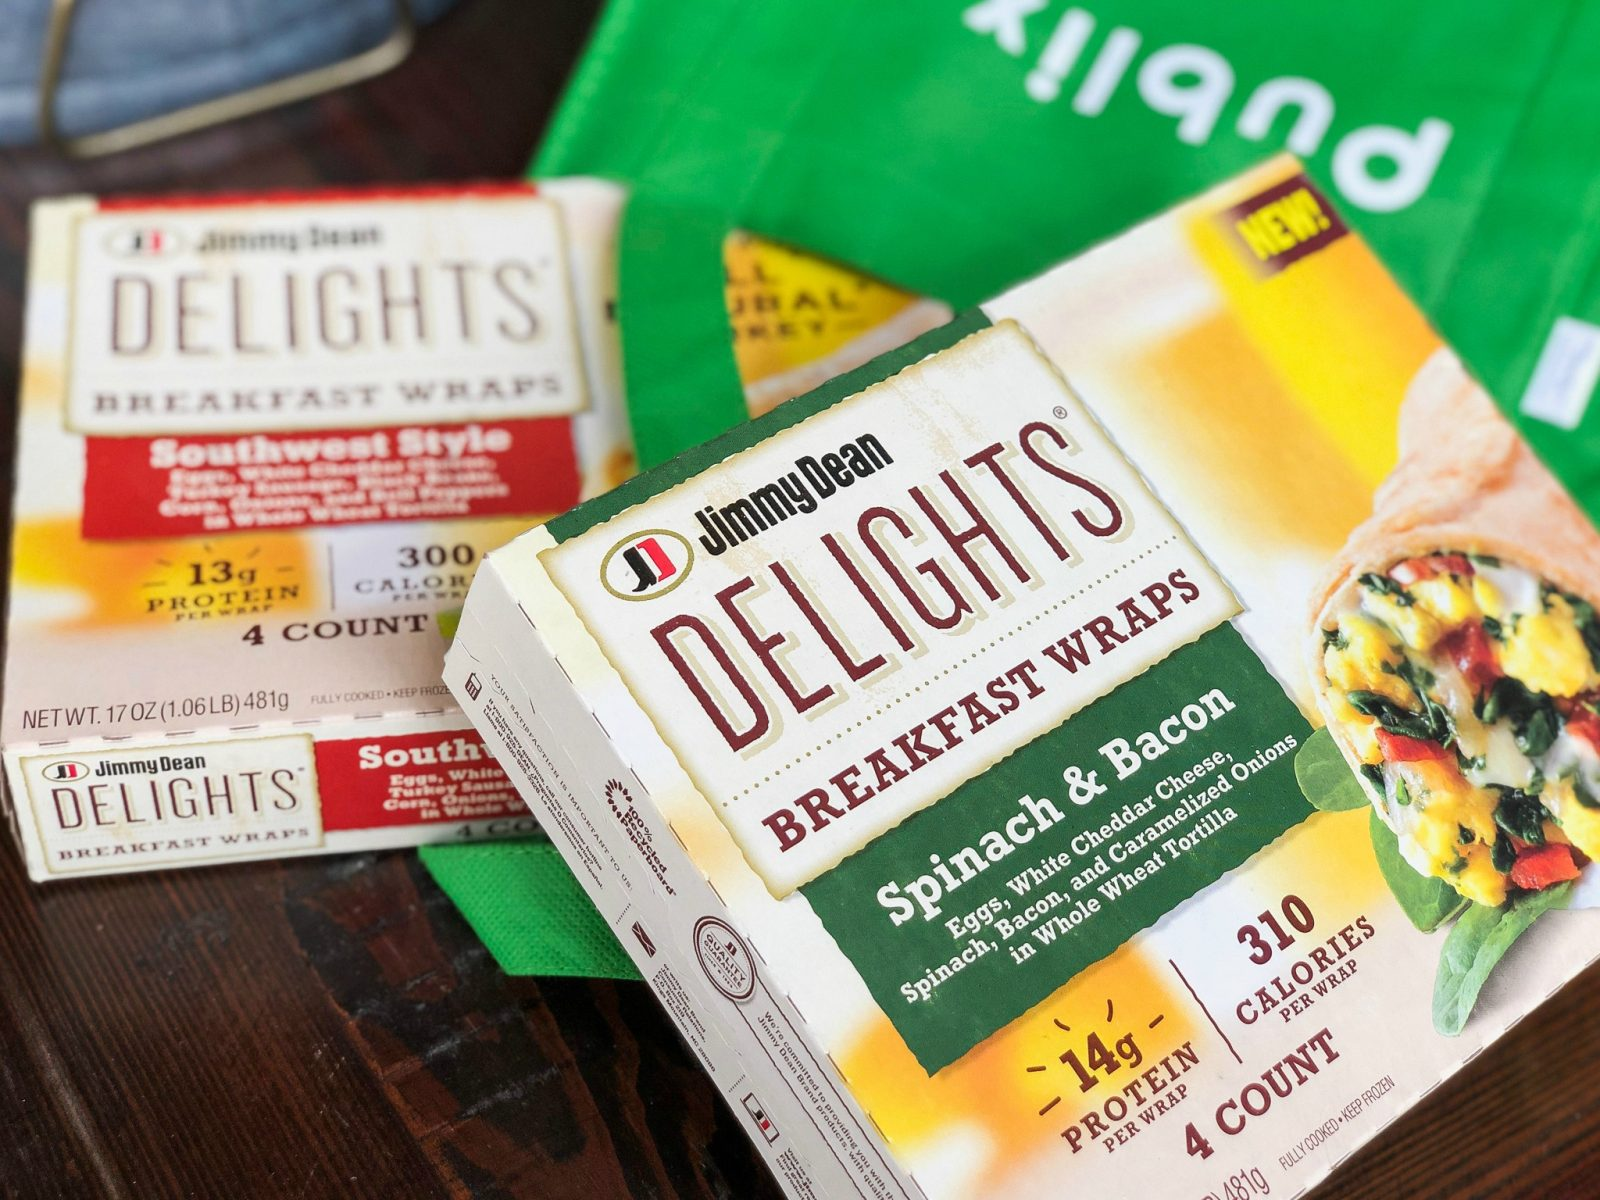 Try New Jimmy Dean Delights® Breakfast Wraps - Clip Your Coupon & Save! on I Heart Publix 1